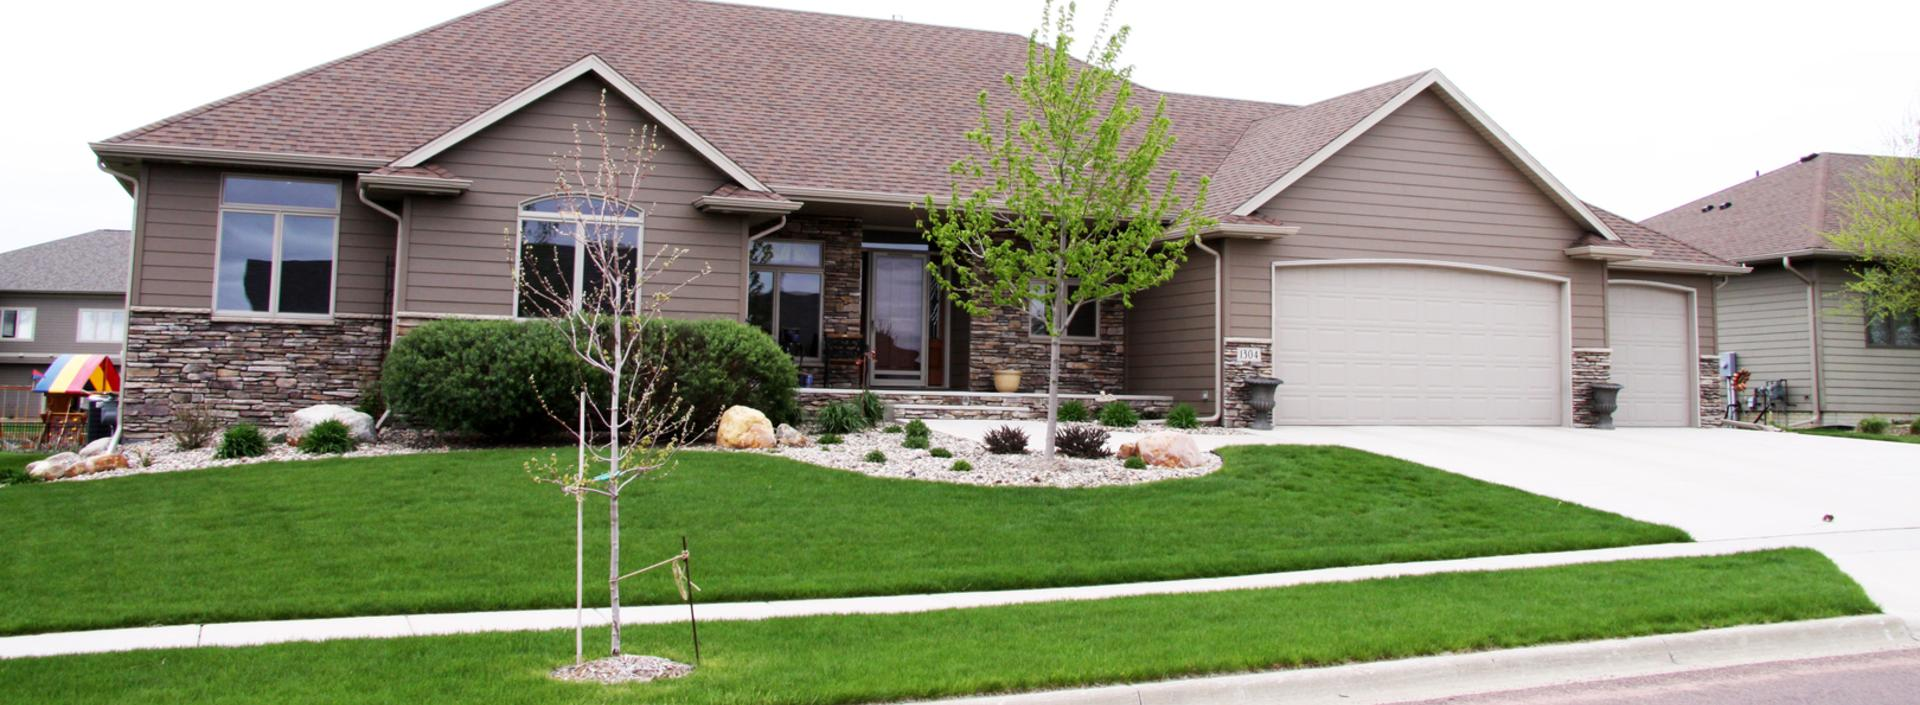 Thurman Construction Sioux Falls Home Construction